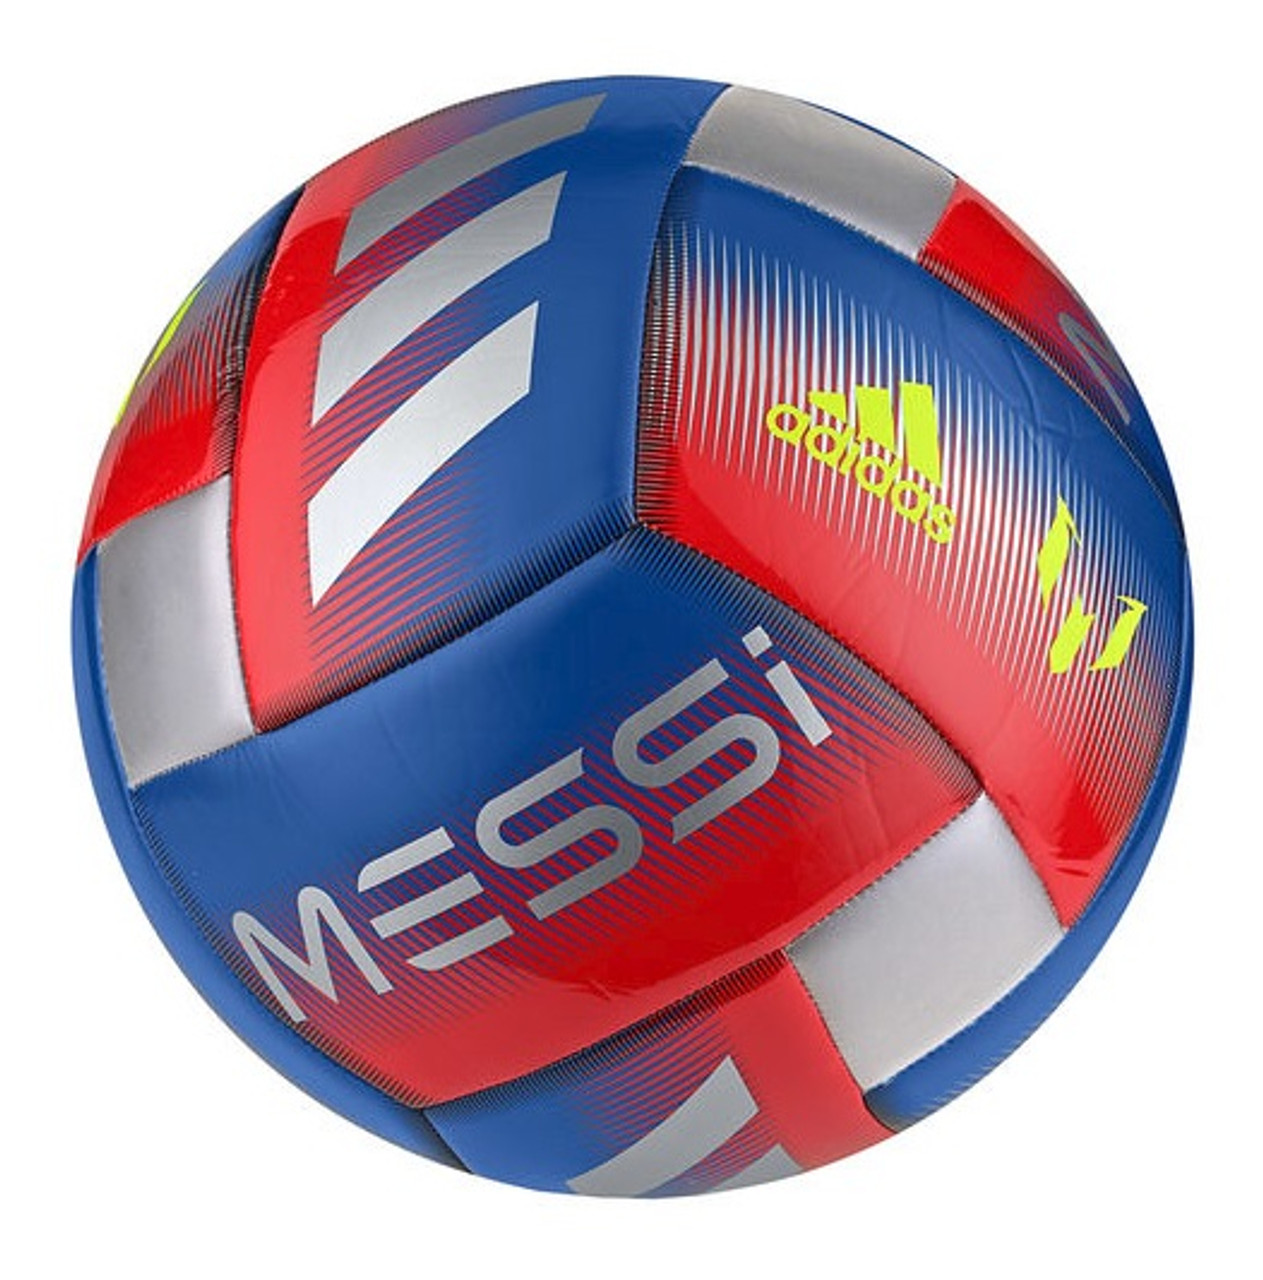 26e3d8af0 Adidas Messi CPT Soccer Ball - Blue/Red/Silver (121518) - ohp soccer